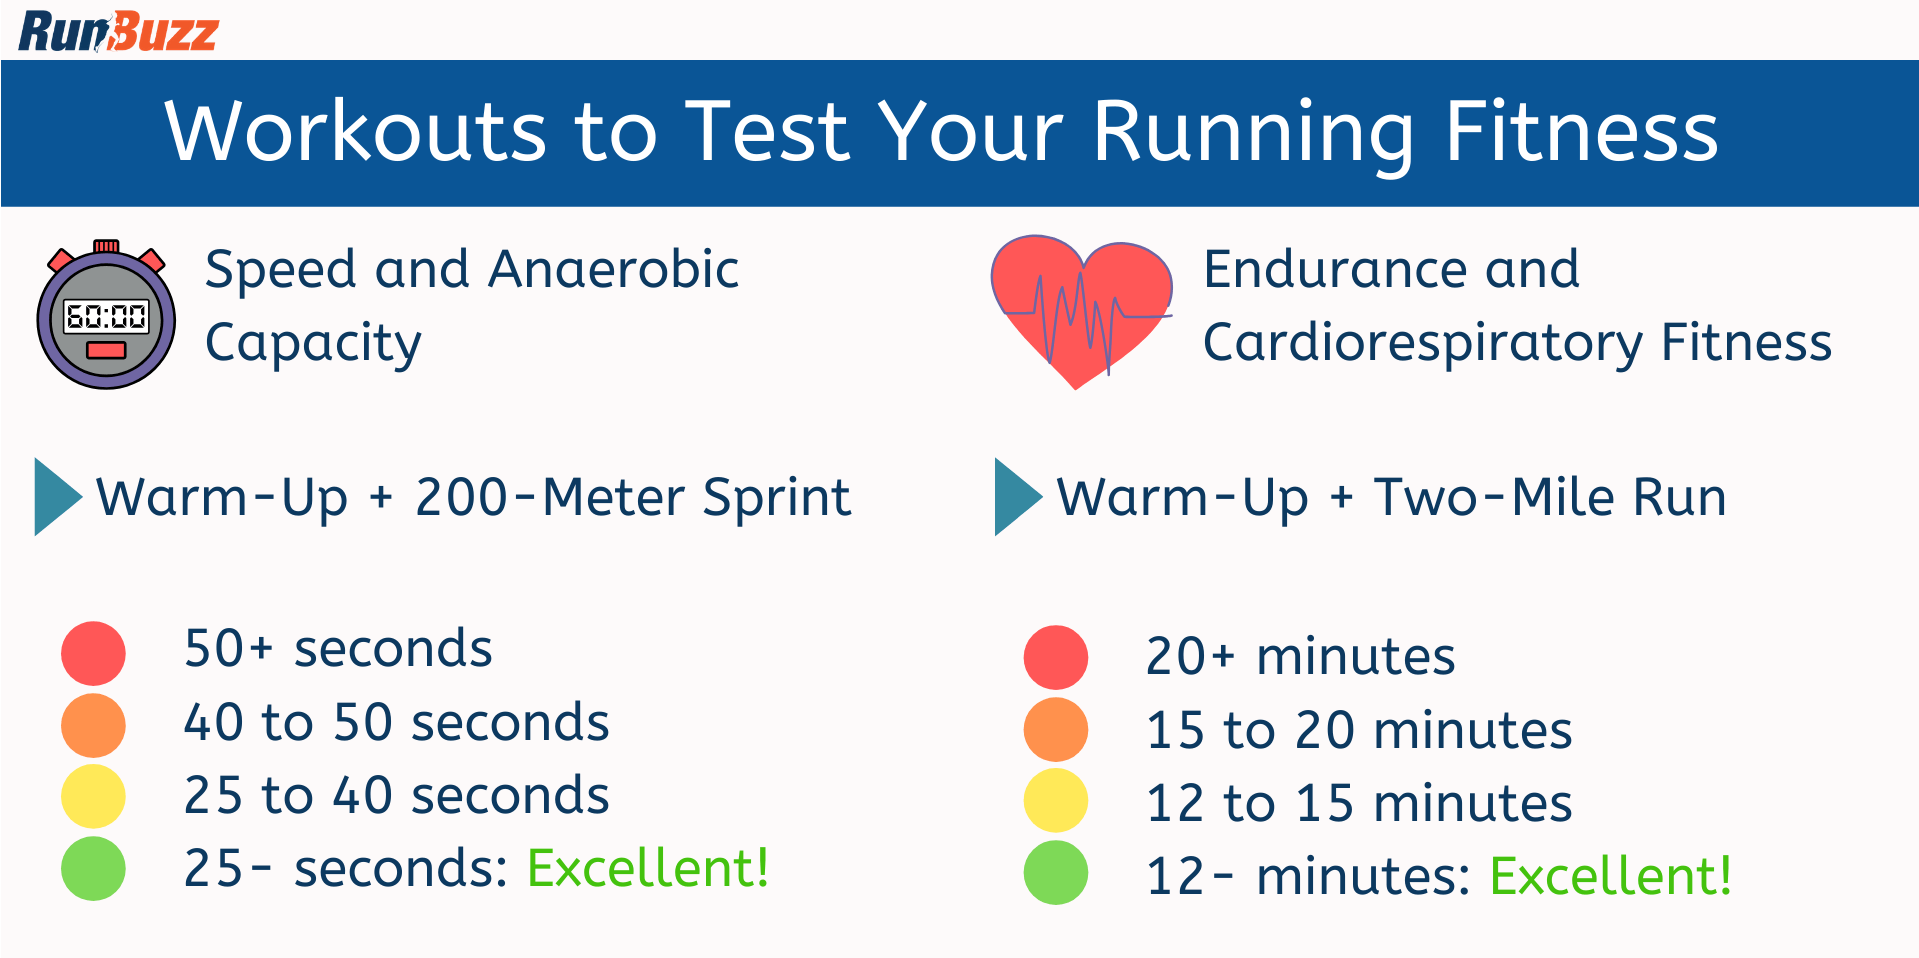 Workouts-to-Test-Your-Running-Fitness